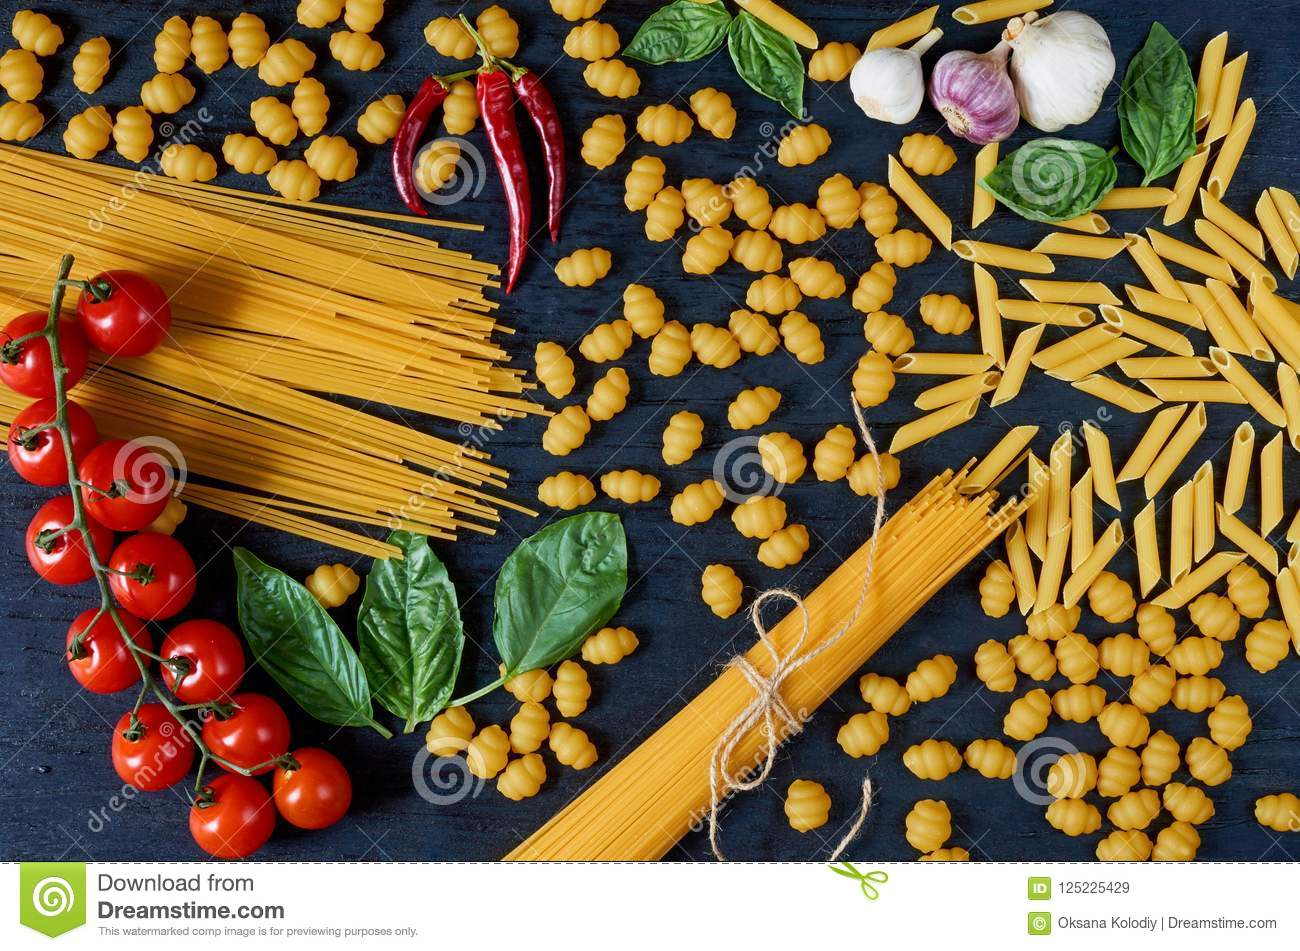 Italian traditional food, spices and ingredients for cooking as basil leaves, cherry tomatoes, chili pepper, garlic, various pasta